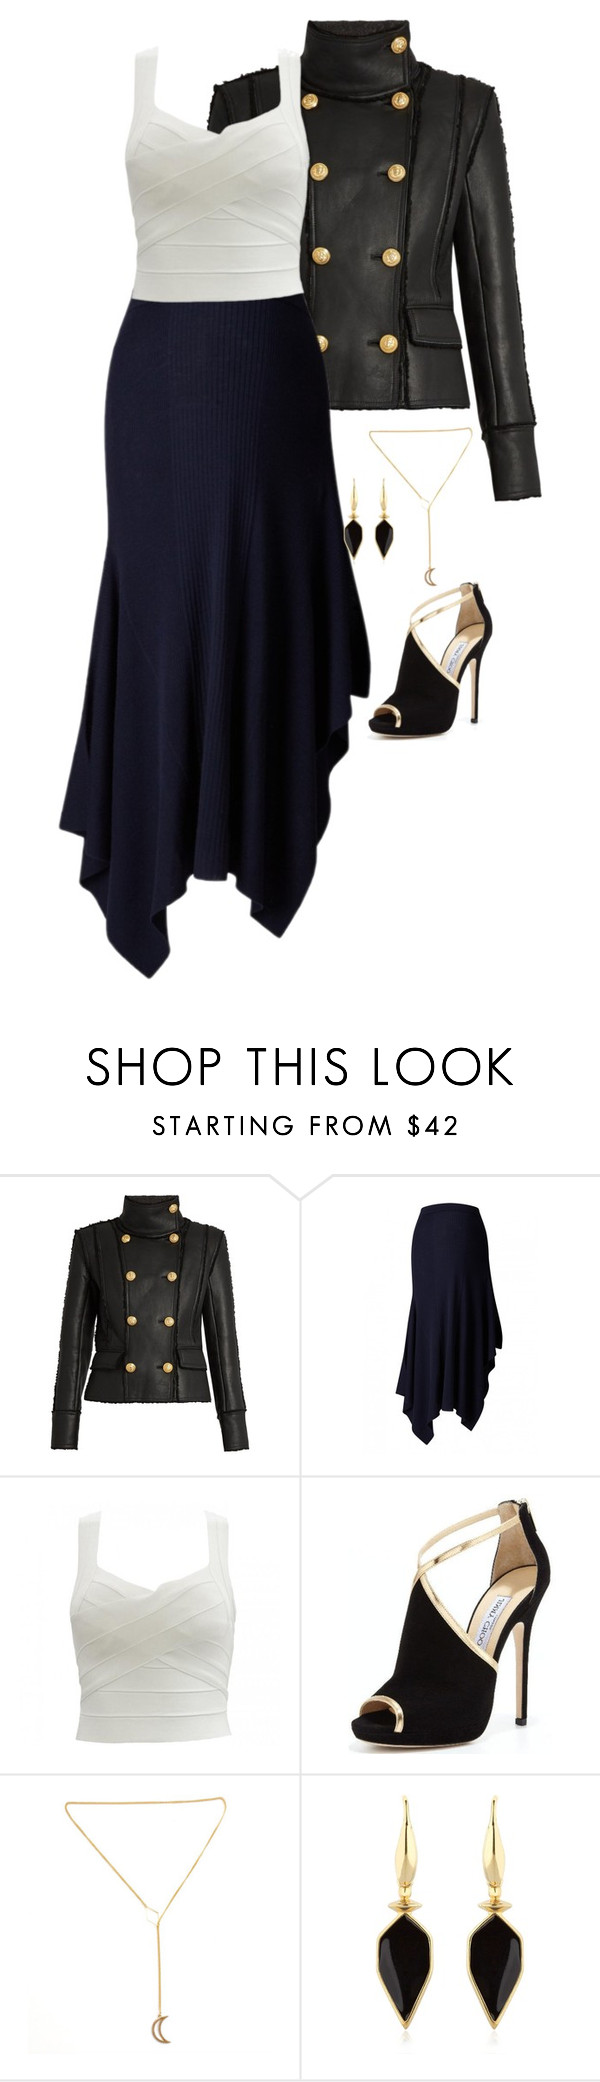 """""""Untitled #687"""" by tapping-raven ❤ liked on Polyvore featuring Balmain, Jimmy Choo and Isabel Marant"""